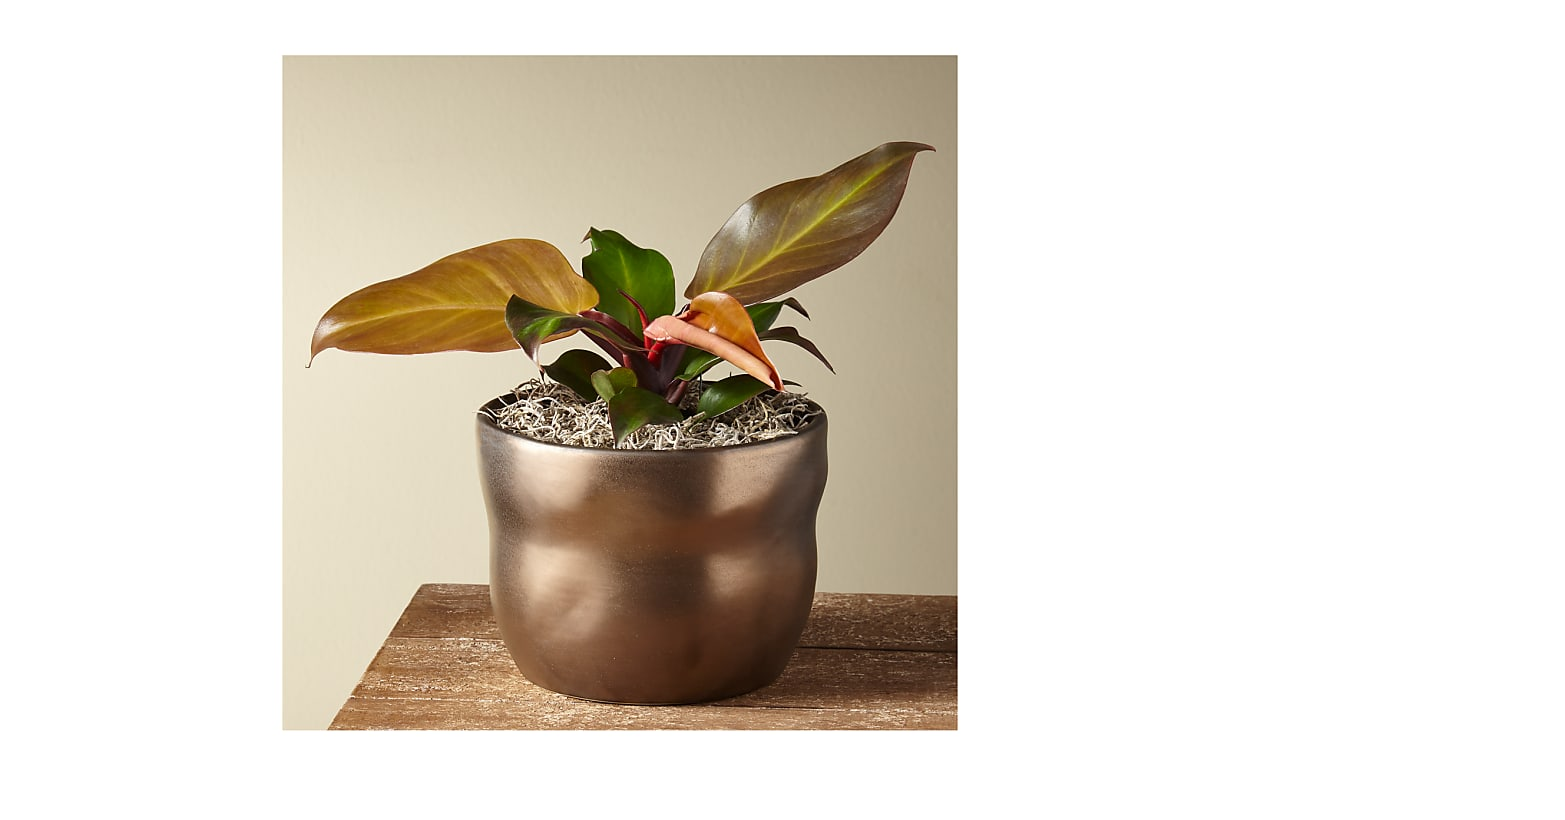 Red King Philodendron